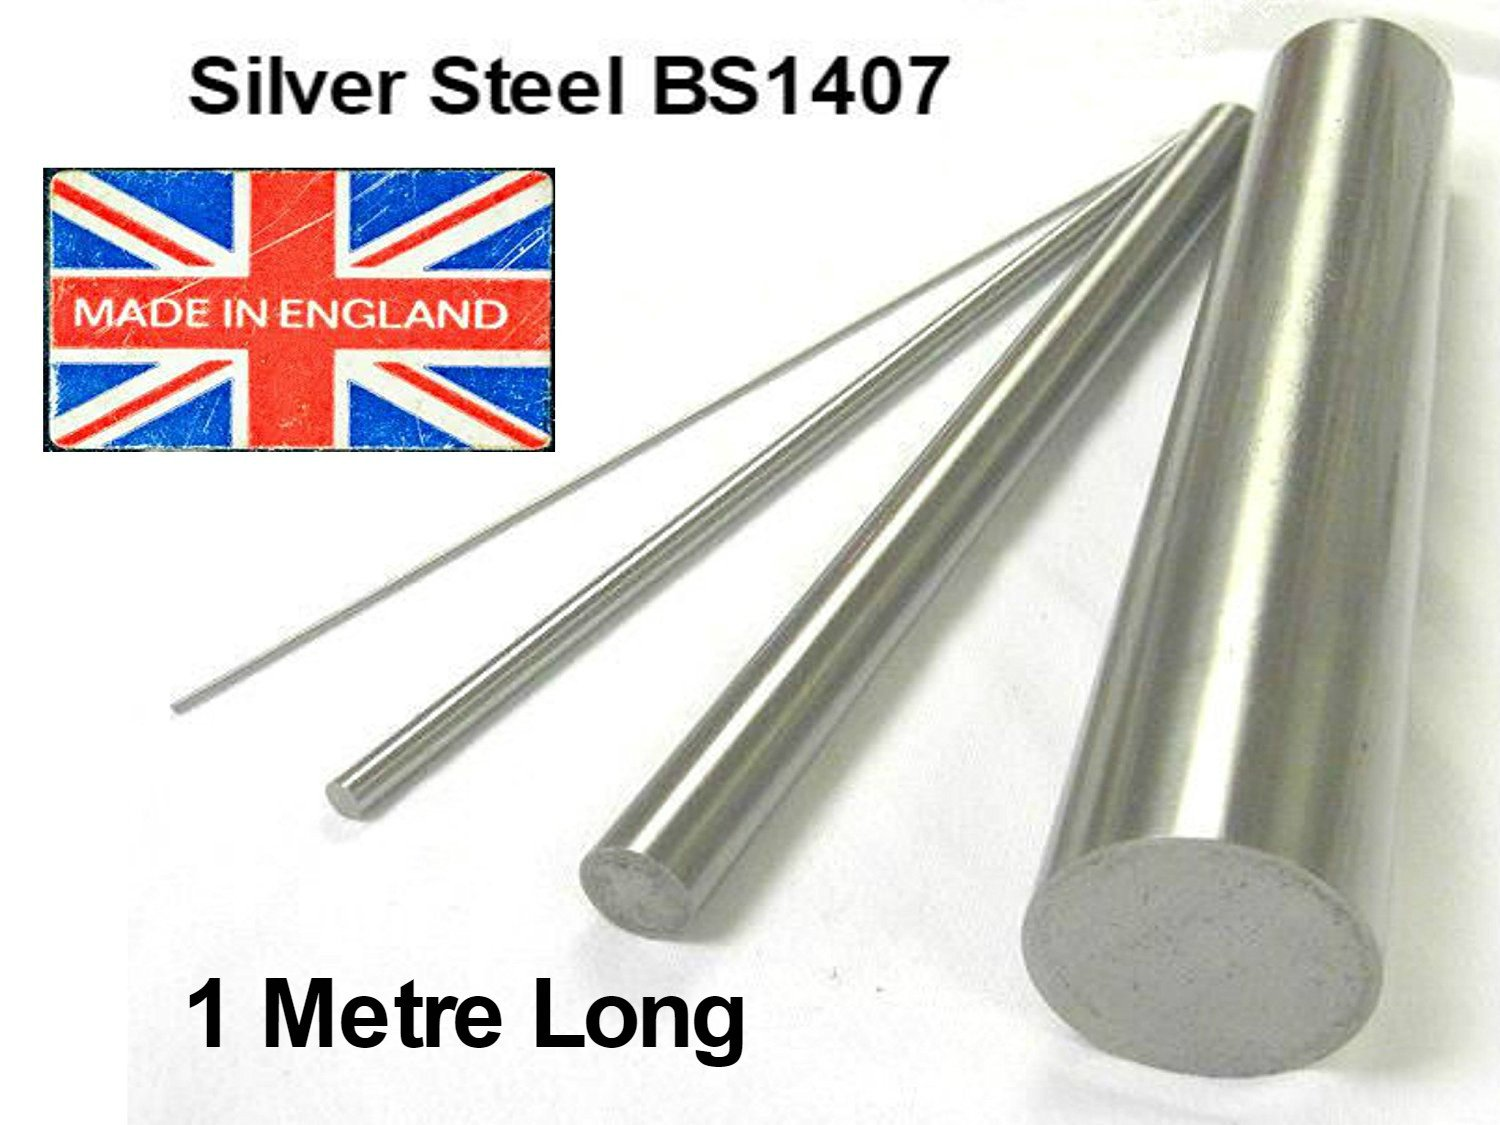 4.5  mm di diametro x 1  metre (1000  mm) Long Silver Steel bar. Precisione metrica asta albero. BS1407 Rennie Tool